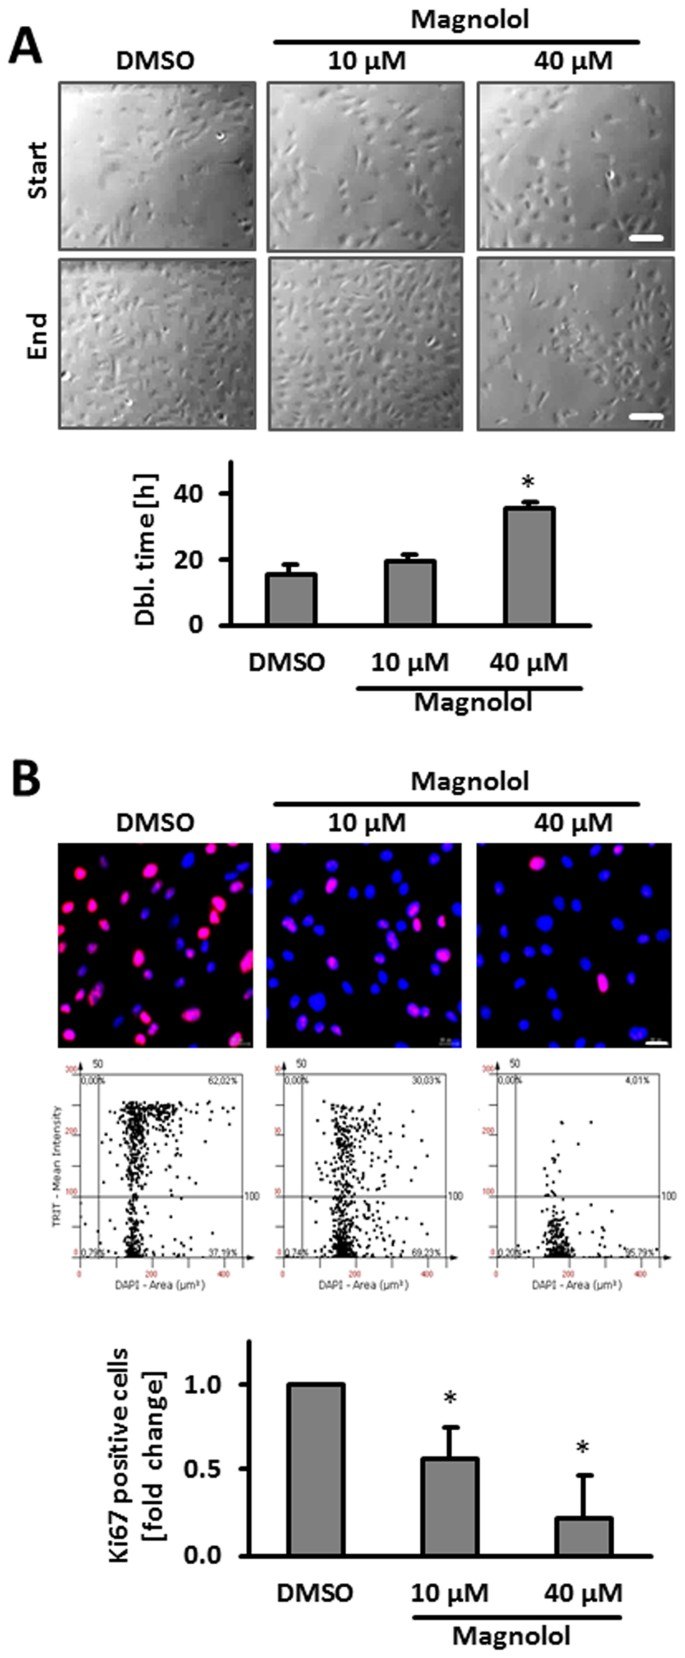 Magnolol inhibits venous remodeling in mice | Scientific Reports